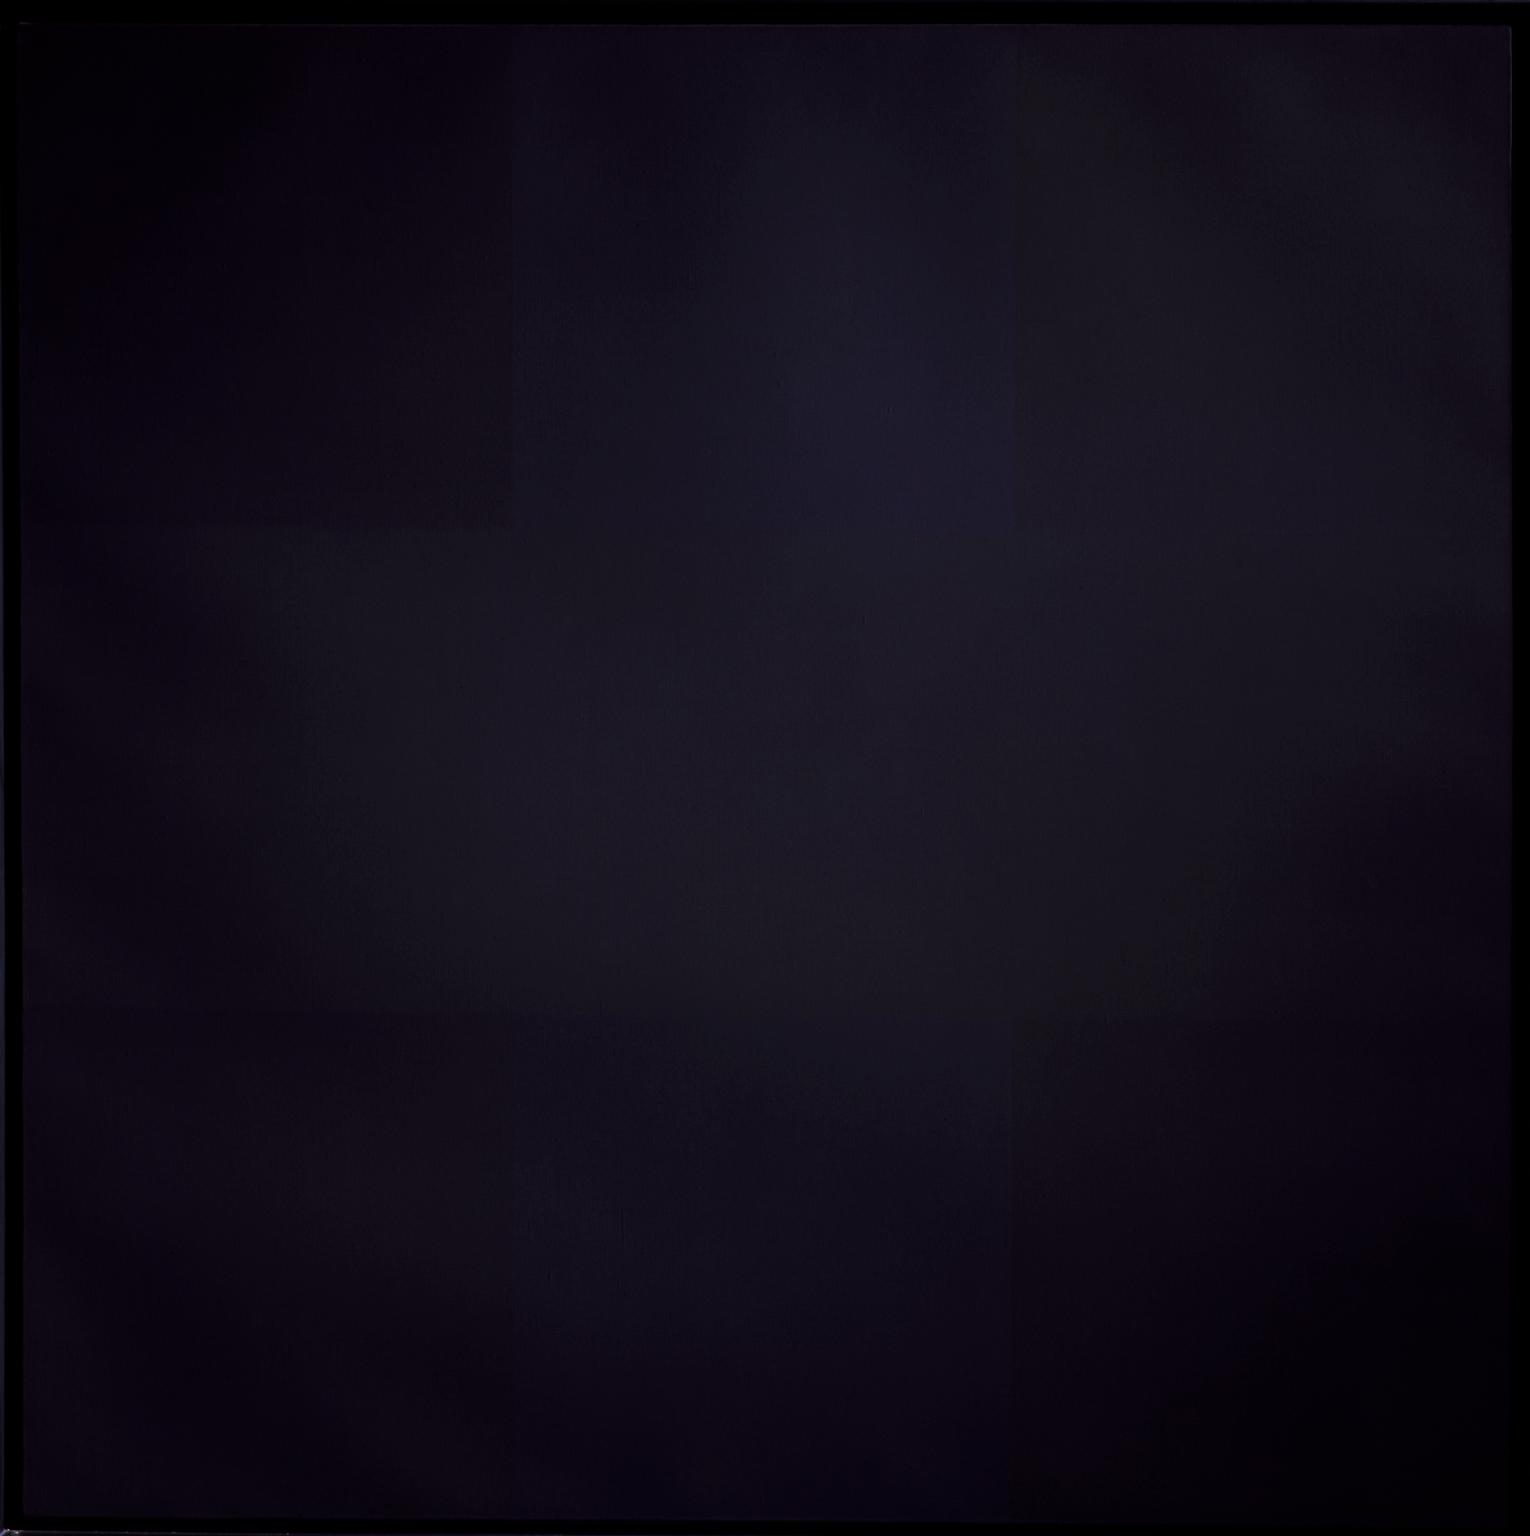 Abstract Painting No. 5 1962 Ad Reinhardt 1913-1967 Presented by Mrs Rita Reinhardt through the American Federation of Arts 1972 http://www.tate.org.uk/art/work/T01582